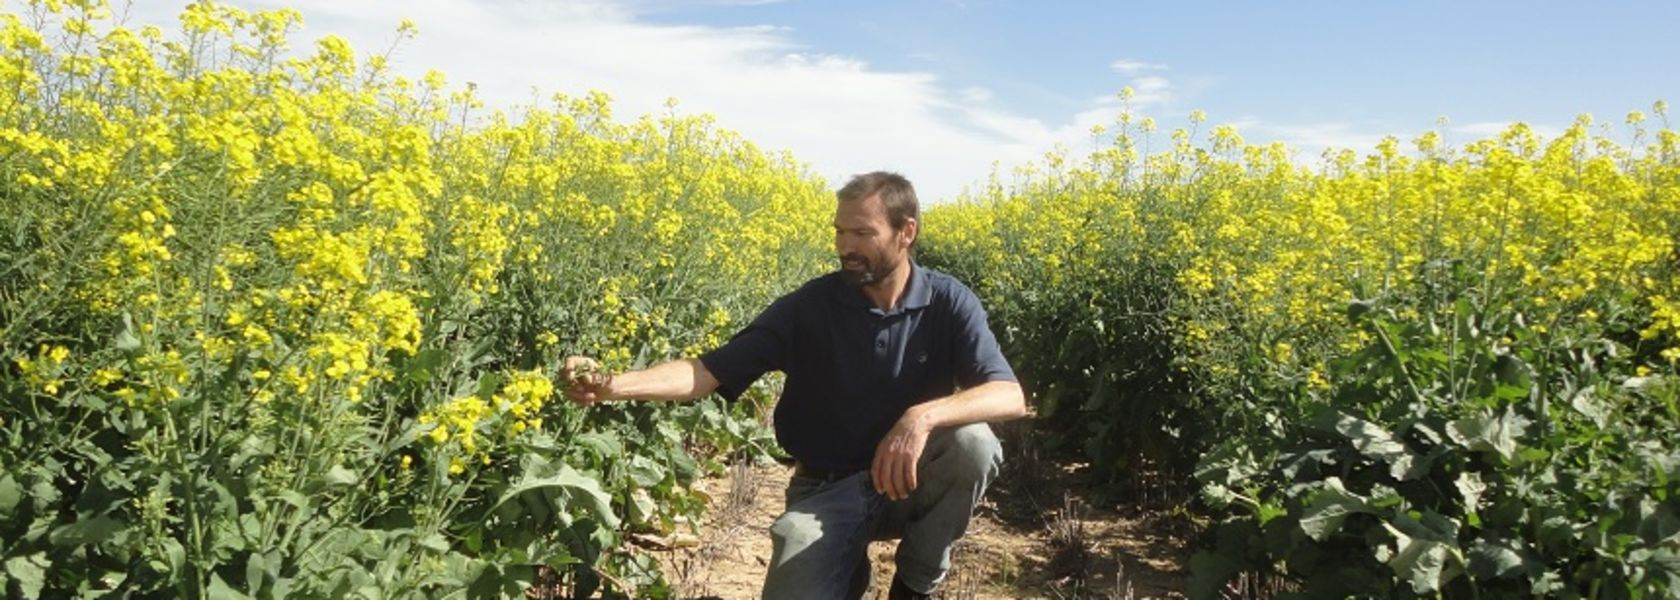 Precision seeding technology shows promise